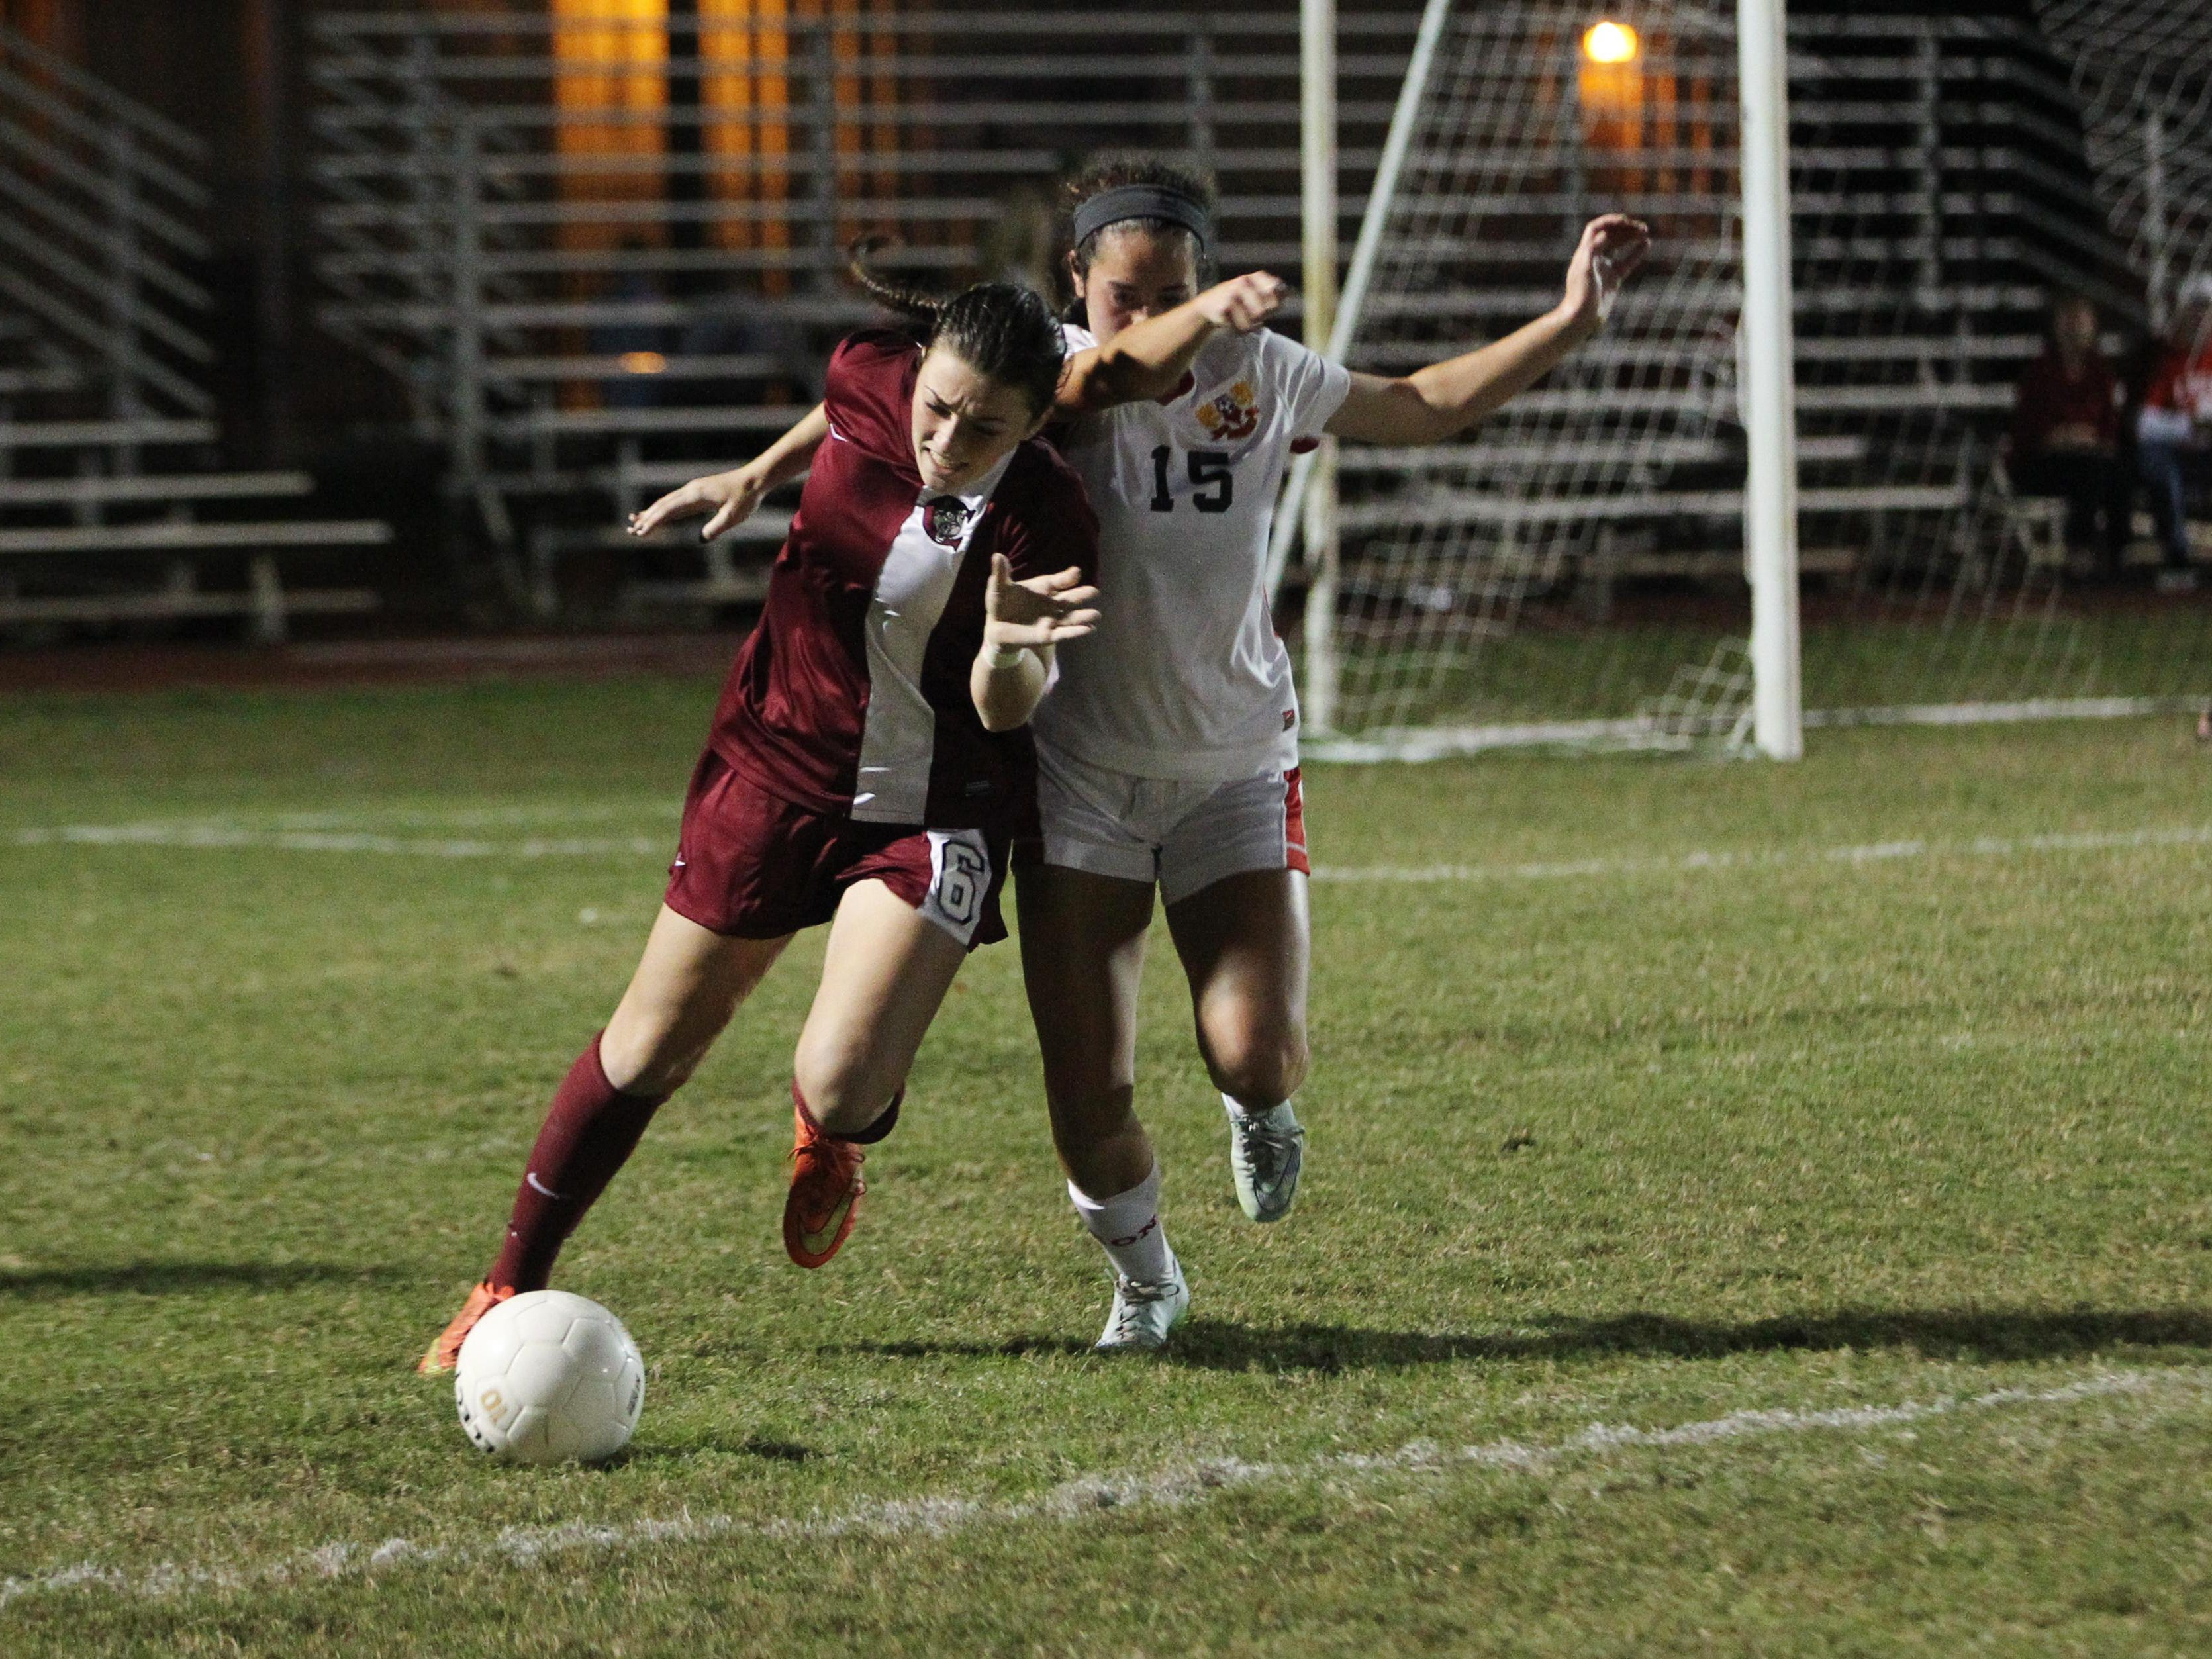 Chiles junior Olivia Snow battles Leon freshman Liney Brantley for the ball in a game between Leon and Chiles.